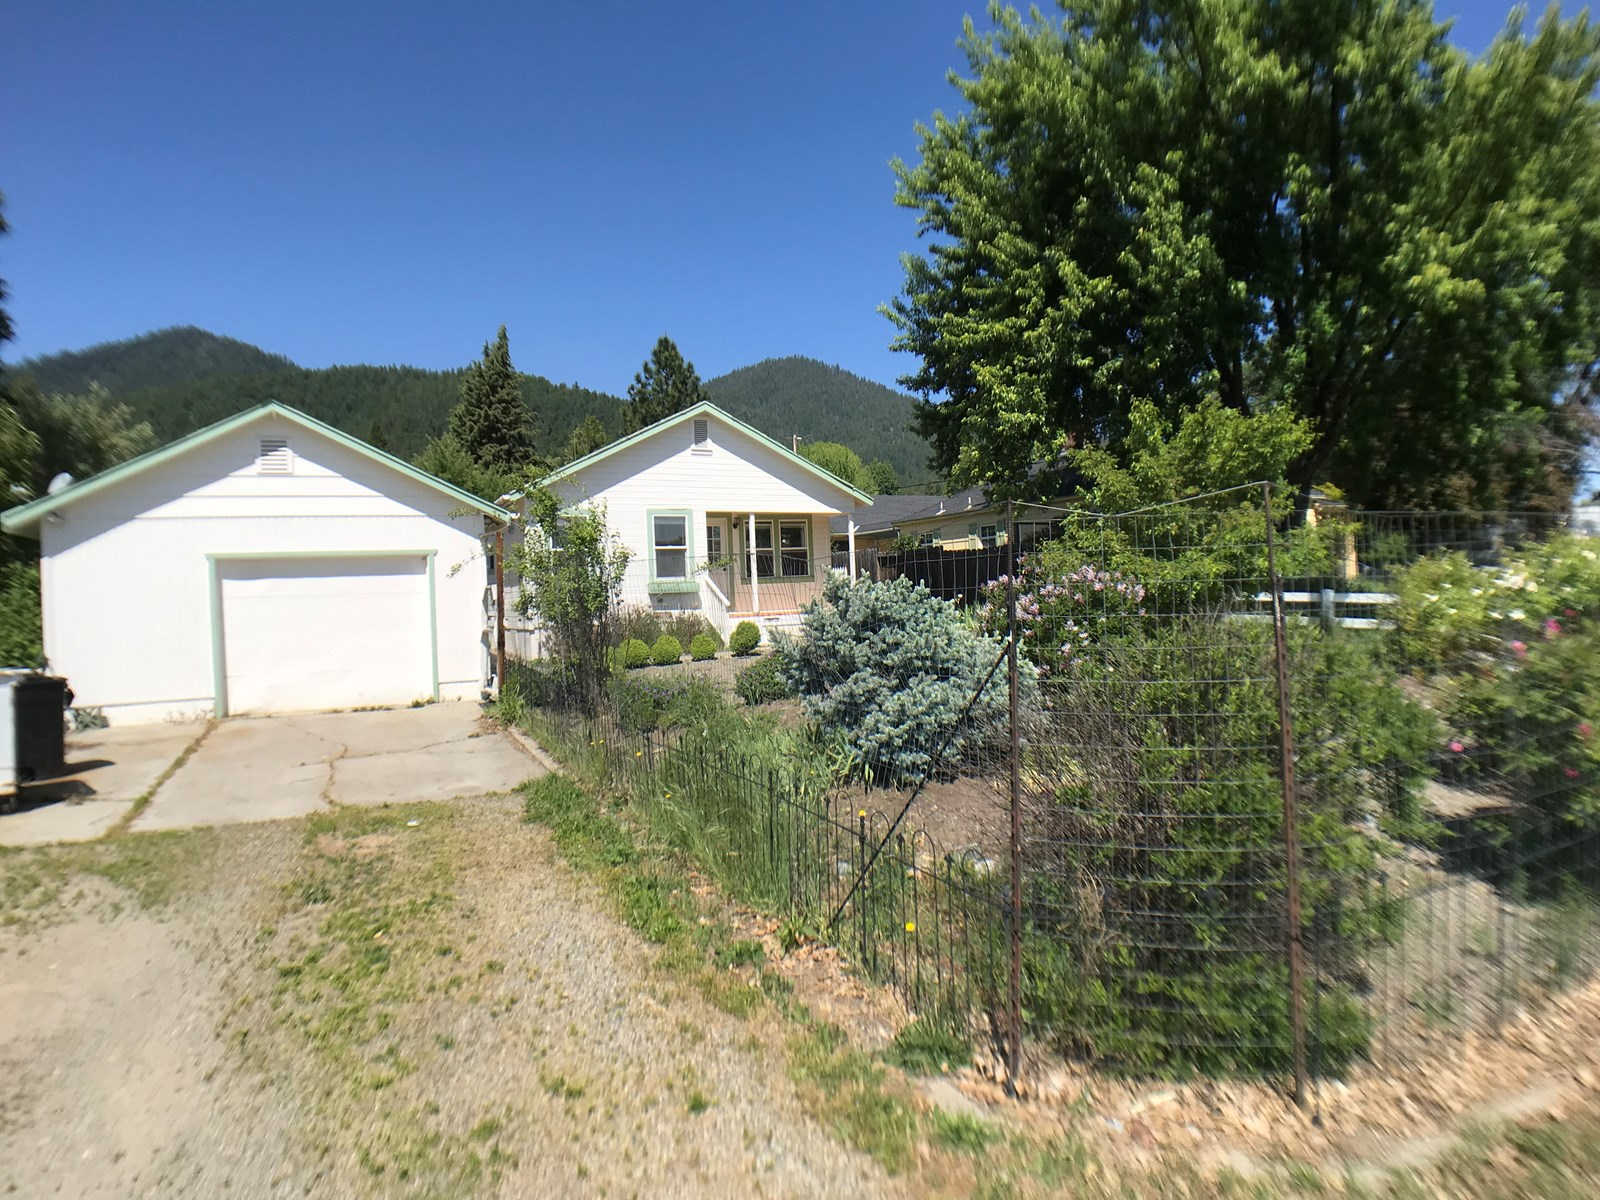 Home For Sale in Etna, California